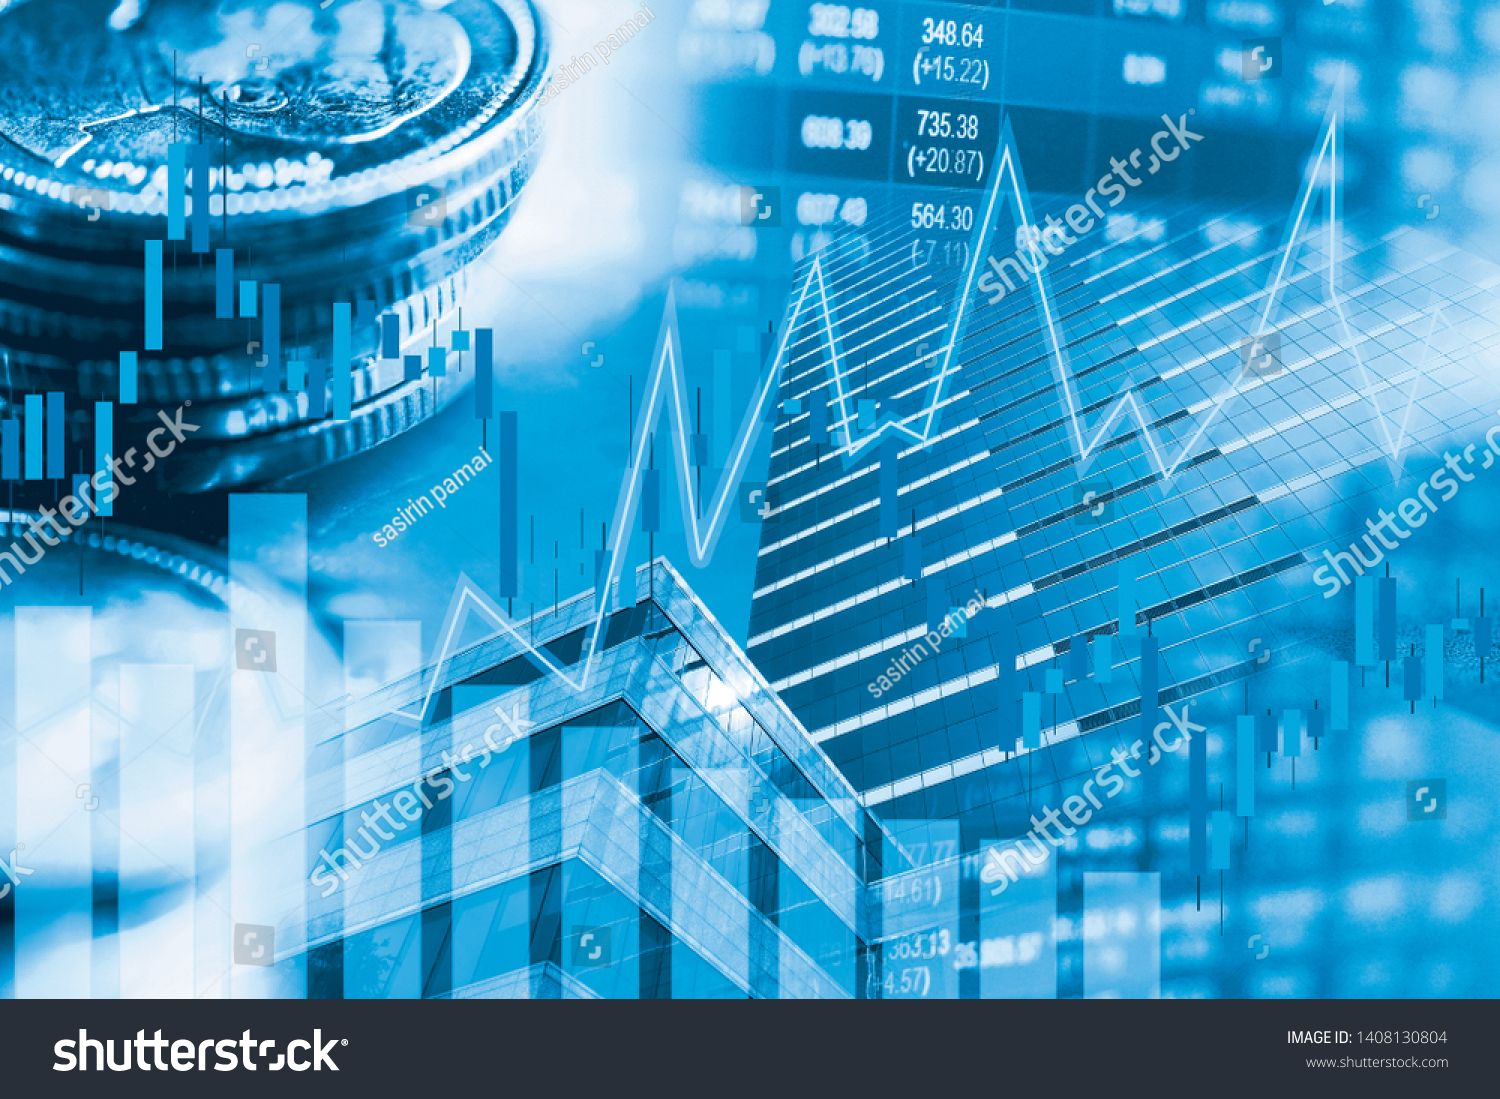 Stock Market Investment Trading Financial Coin And Graph Chart Or Forex For Analyze Profit Finance Business Tren Stock Market Stock Market Investing Investing